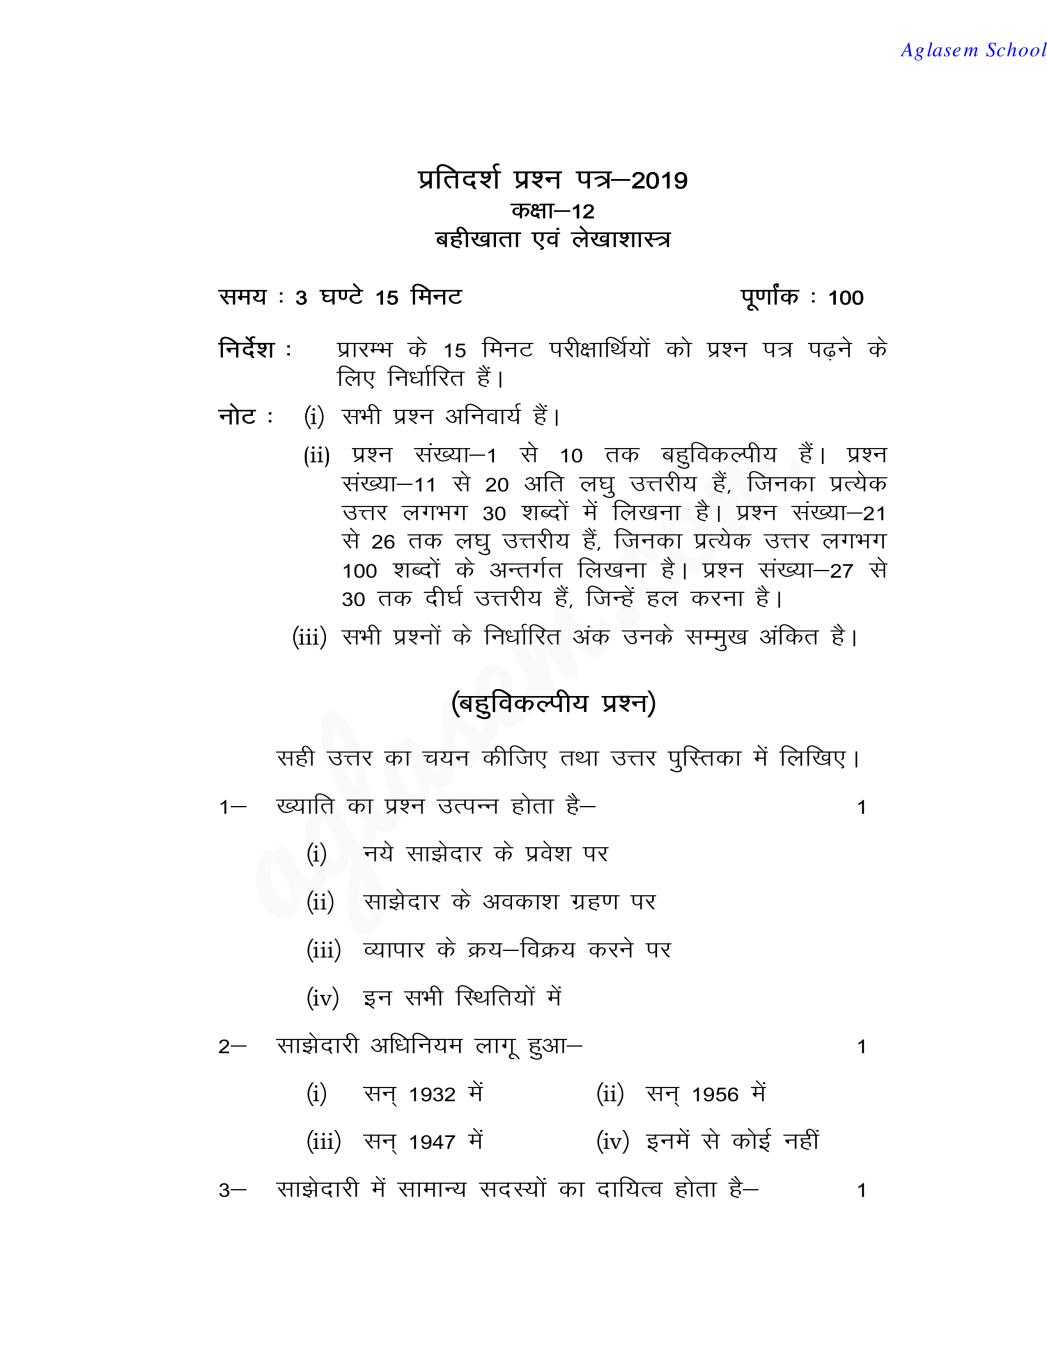 UP Board Model Paper 2020 Class 12th – Book keeping & Accountancy